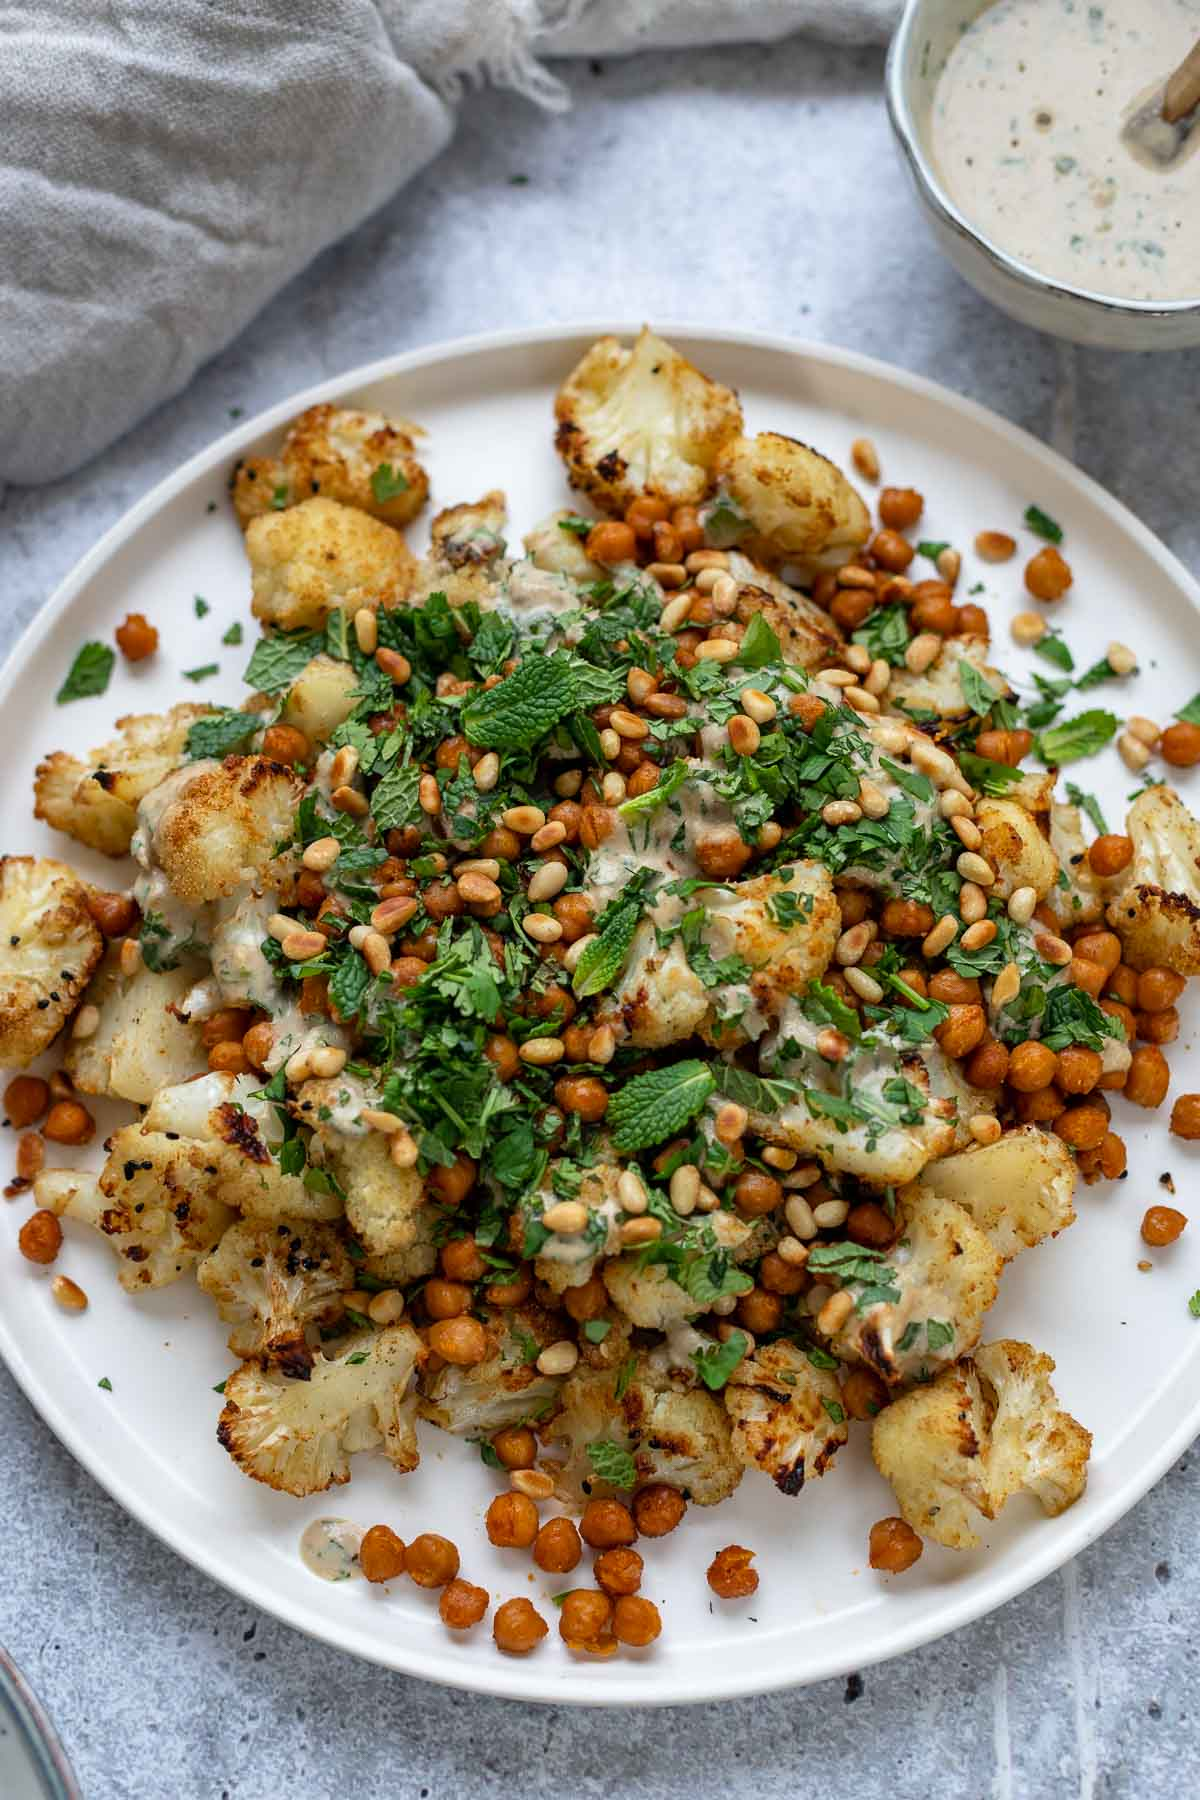 Roasted Cauliflower and Chickpeas with Tahini Dressing